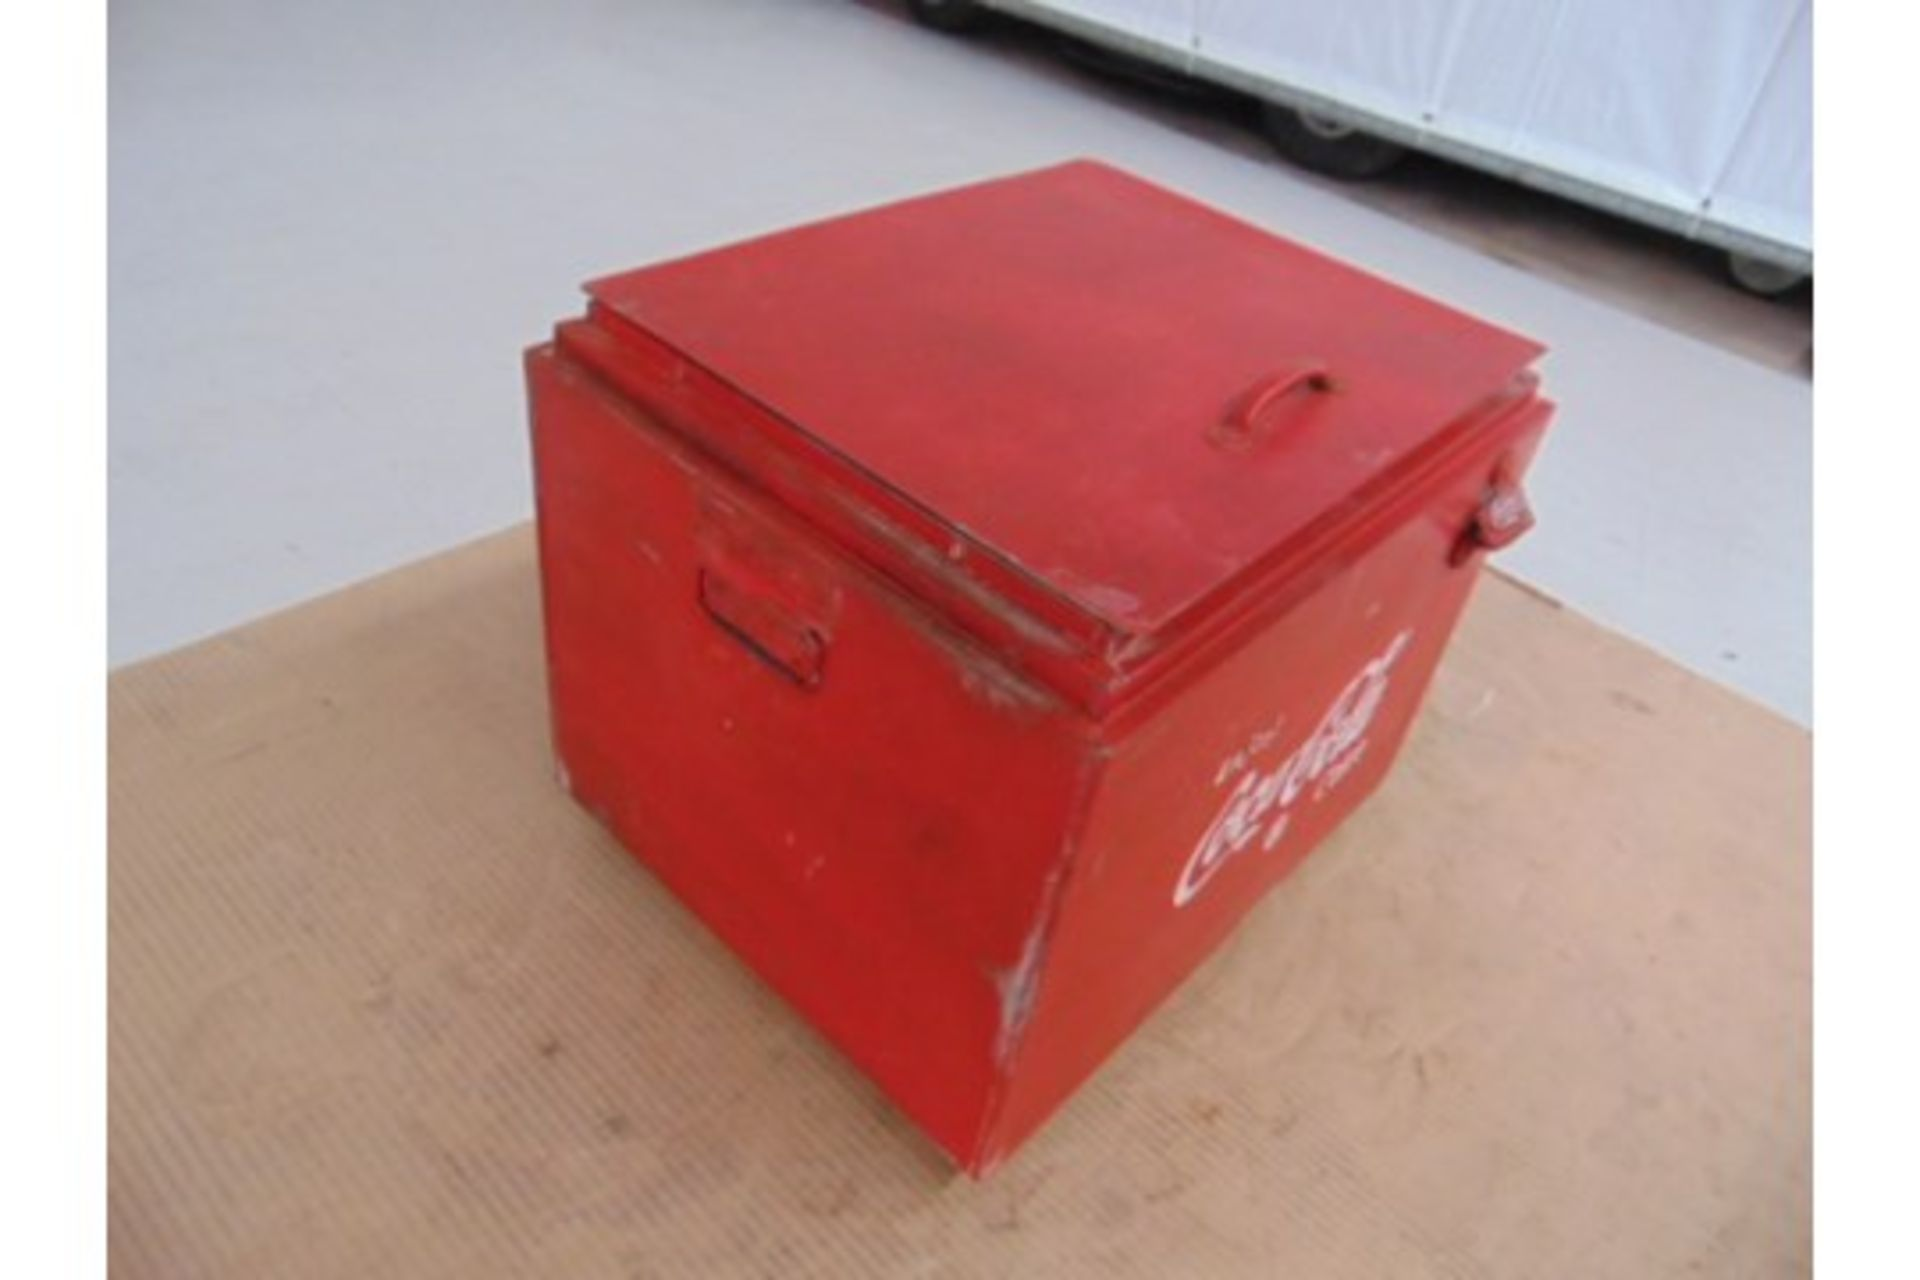 Lot 25877 - Vintage Coca Cola Cooler / Ice Box repro with period bottle opener